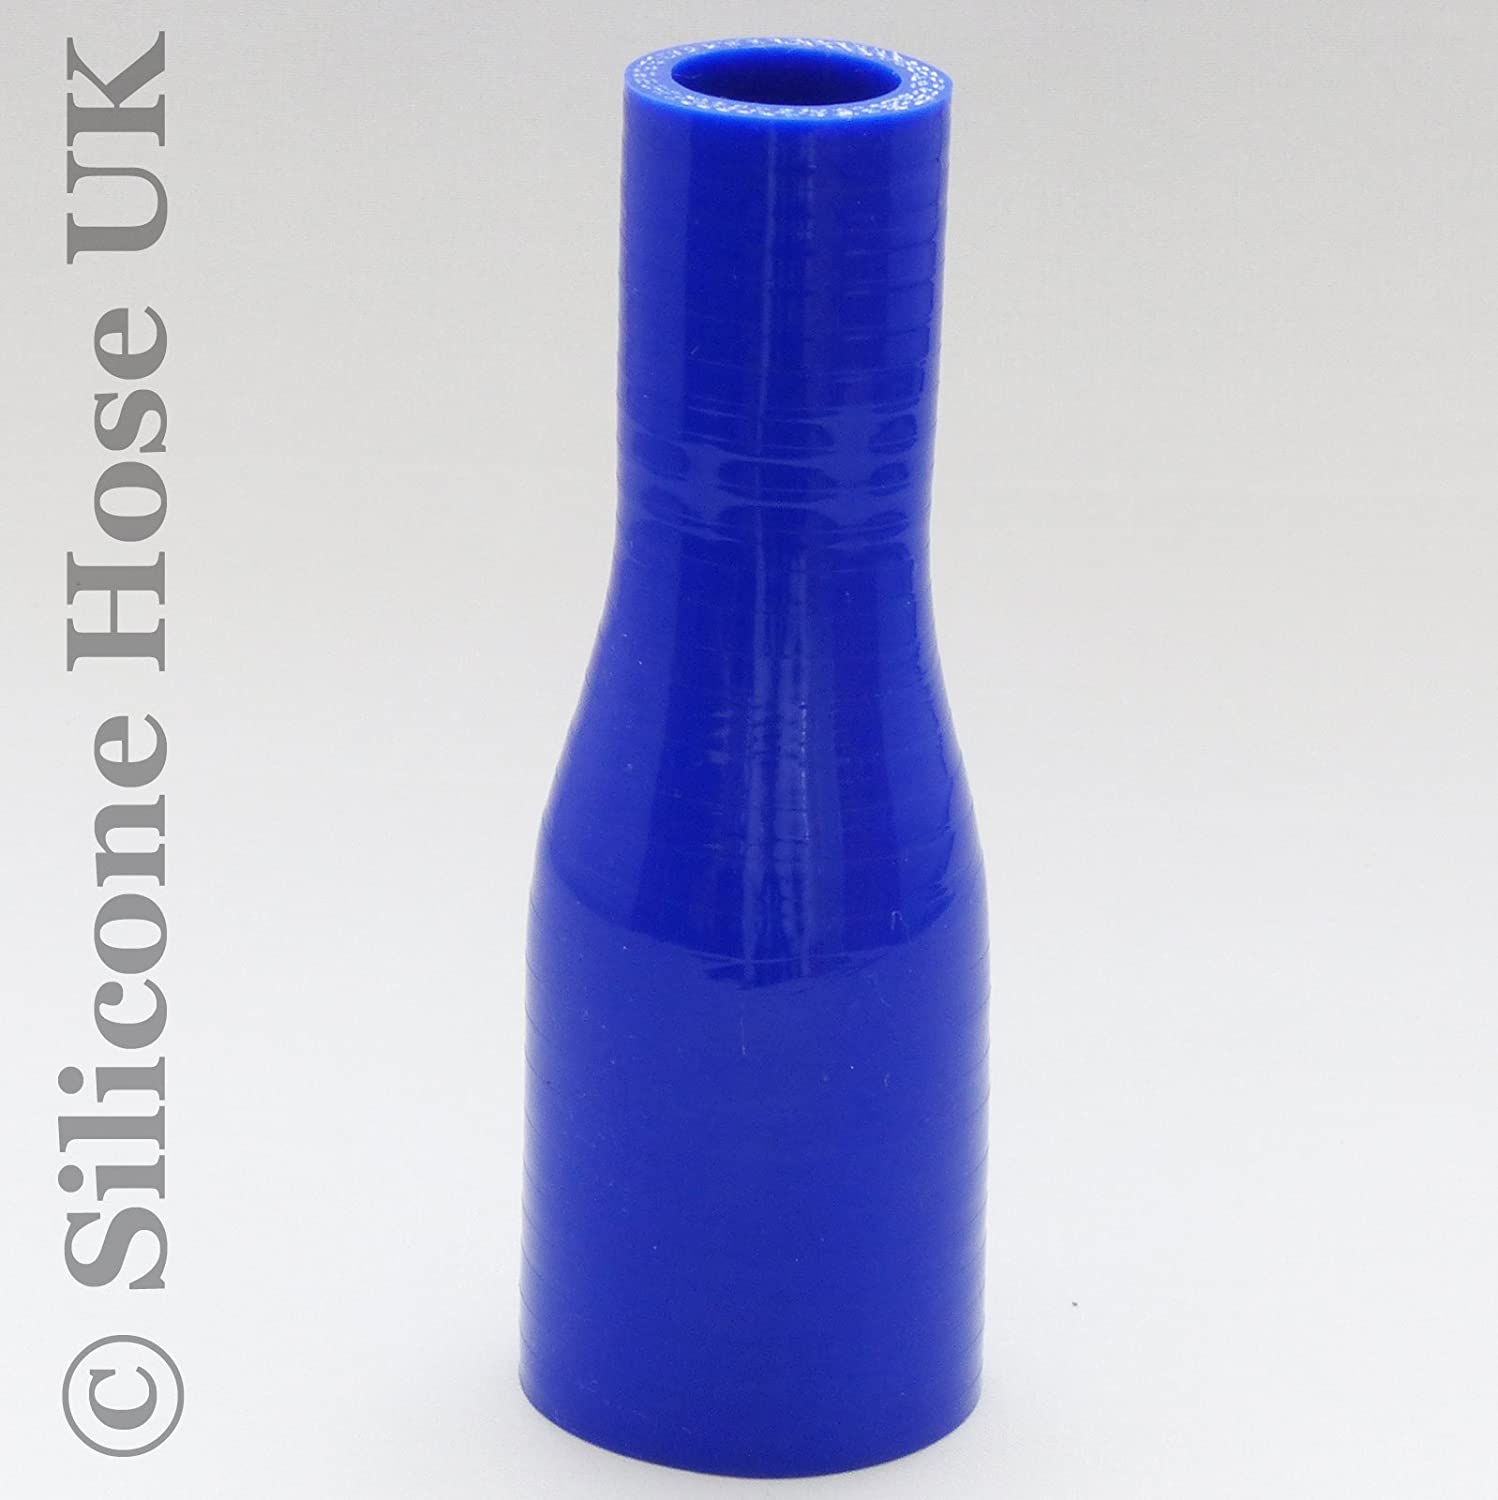 Blue 90mm  70mm Straight Reinforced Silicone Reducer Inlet Connector Hose for Air or Water ID